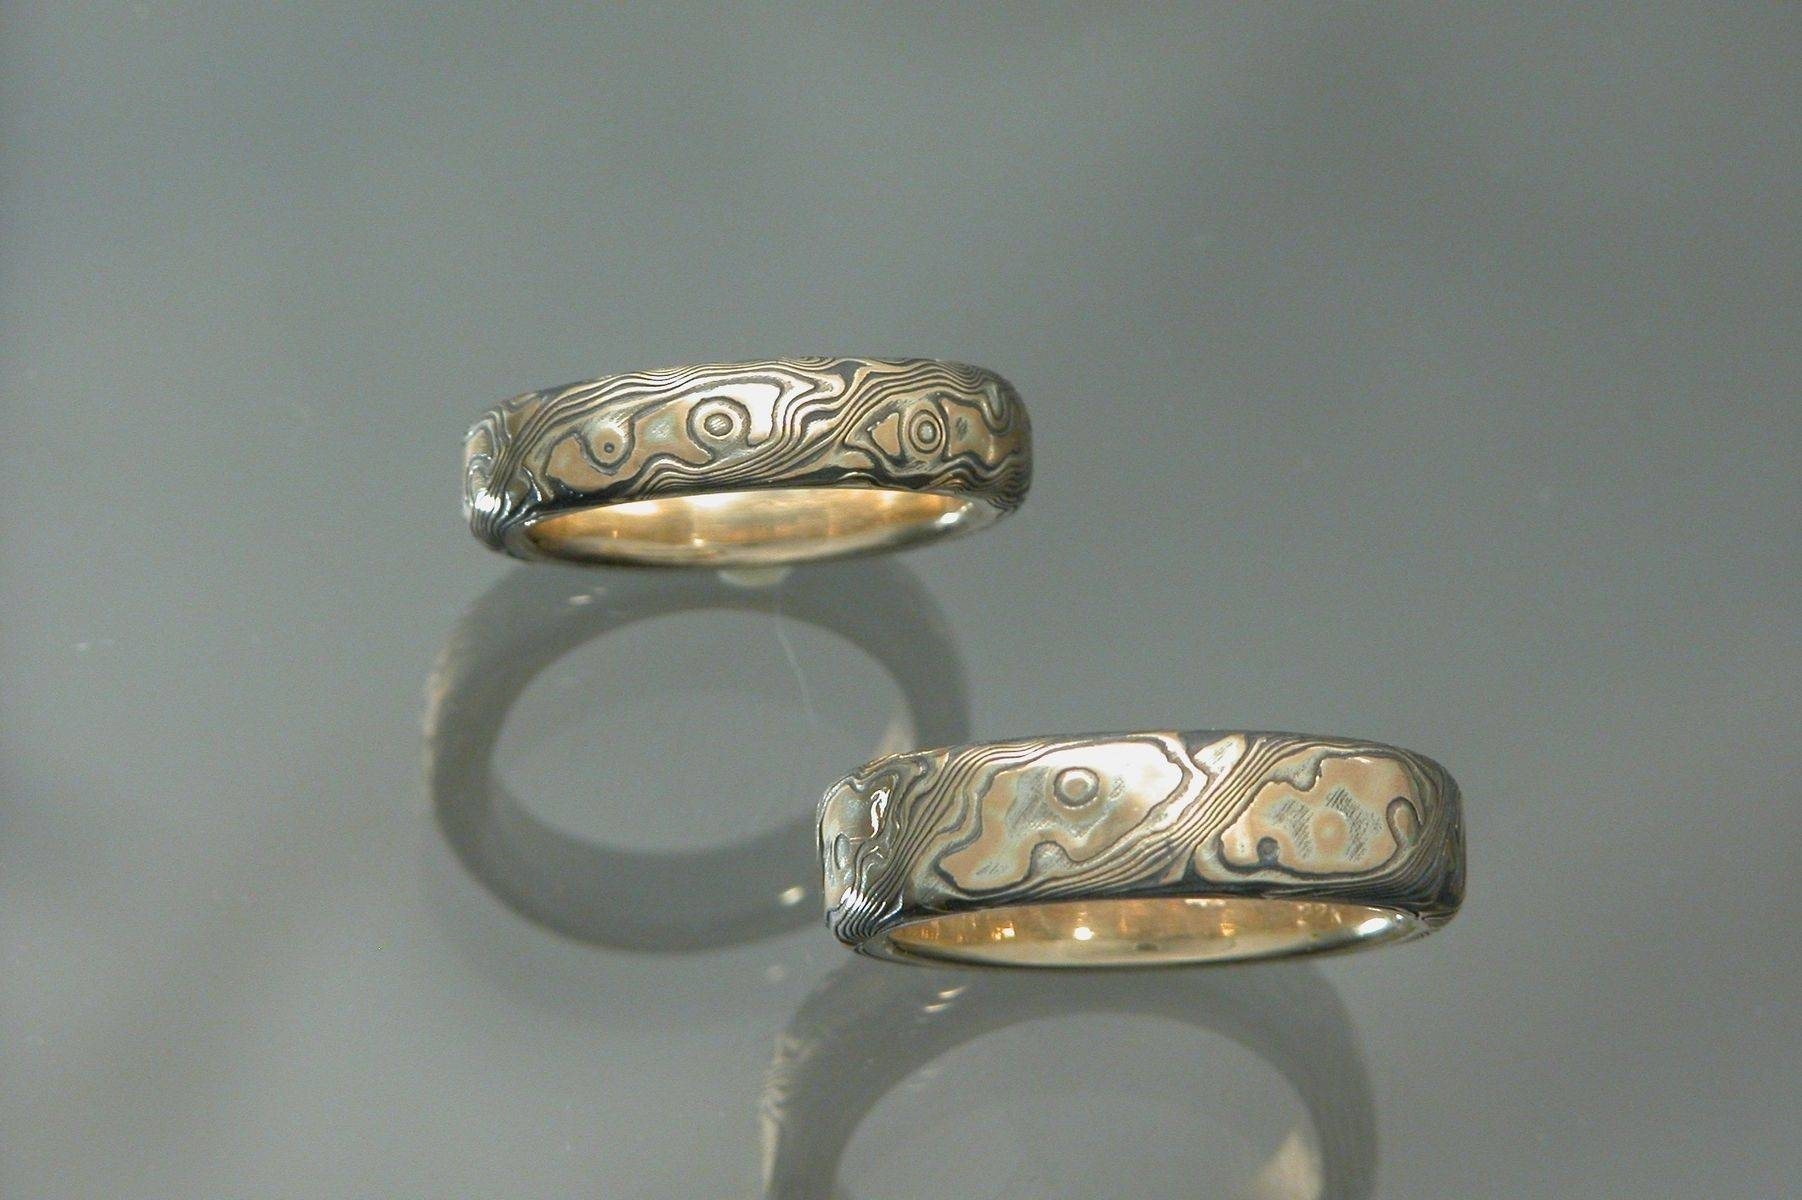 Hand Made 18K Yellow Gold With Sterling Silver Mokume Gane Wedding Within Latest Custom Platinum Wedding Bands (Gallery 12 of 15)